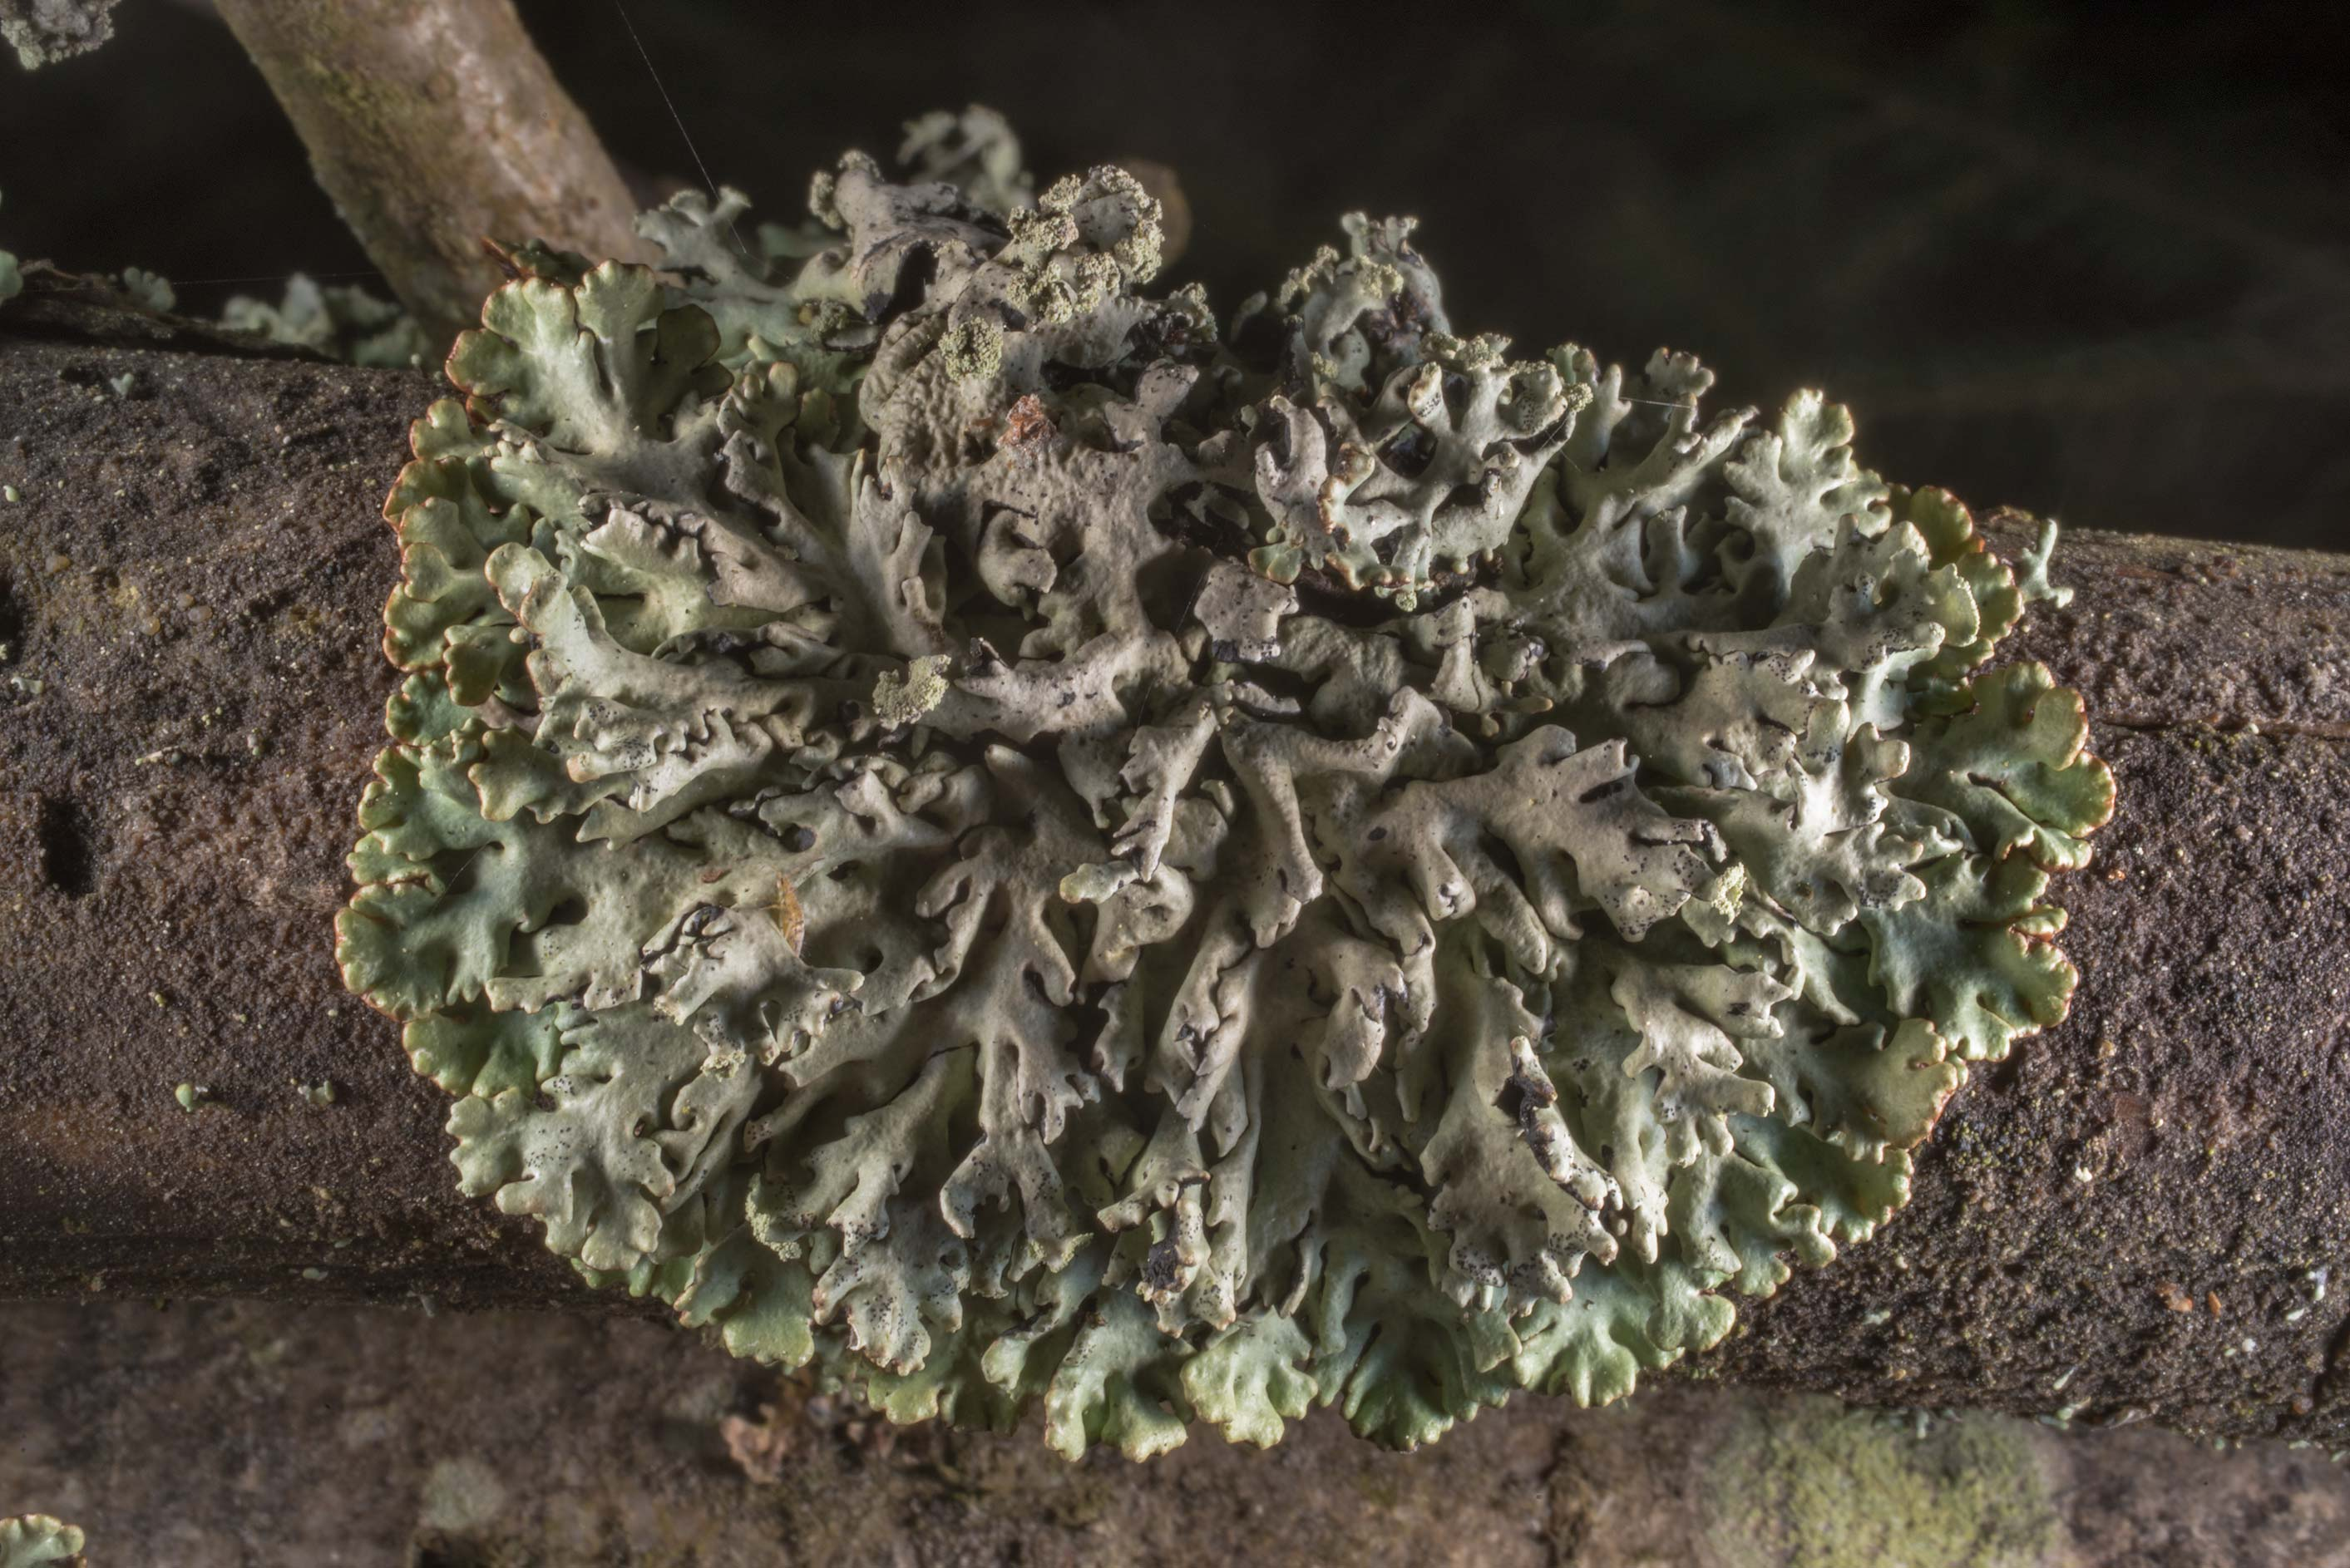 Foliose lichen on a fallen tree branch in...West from St.Petersburg, Russia